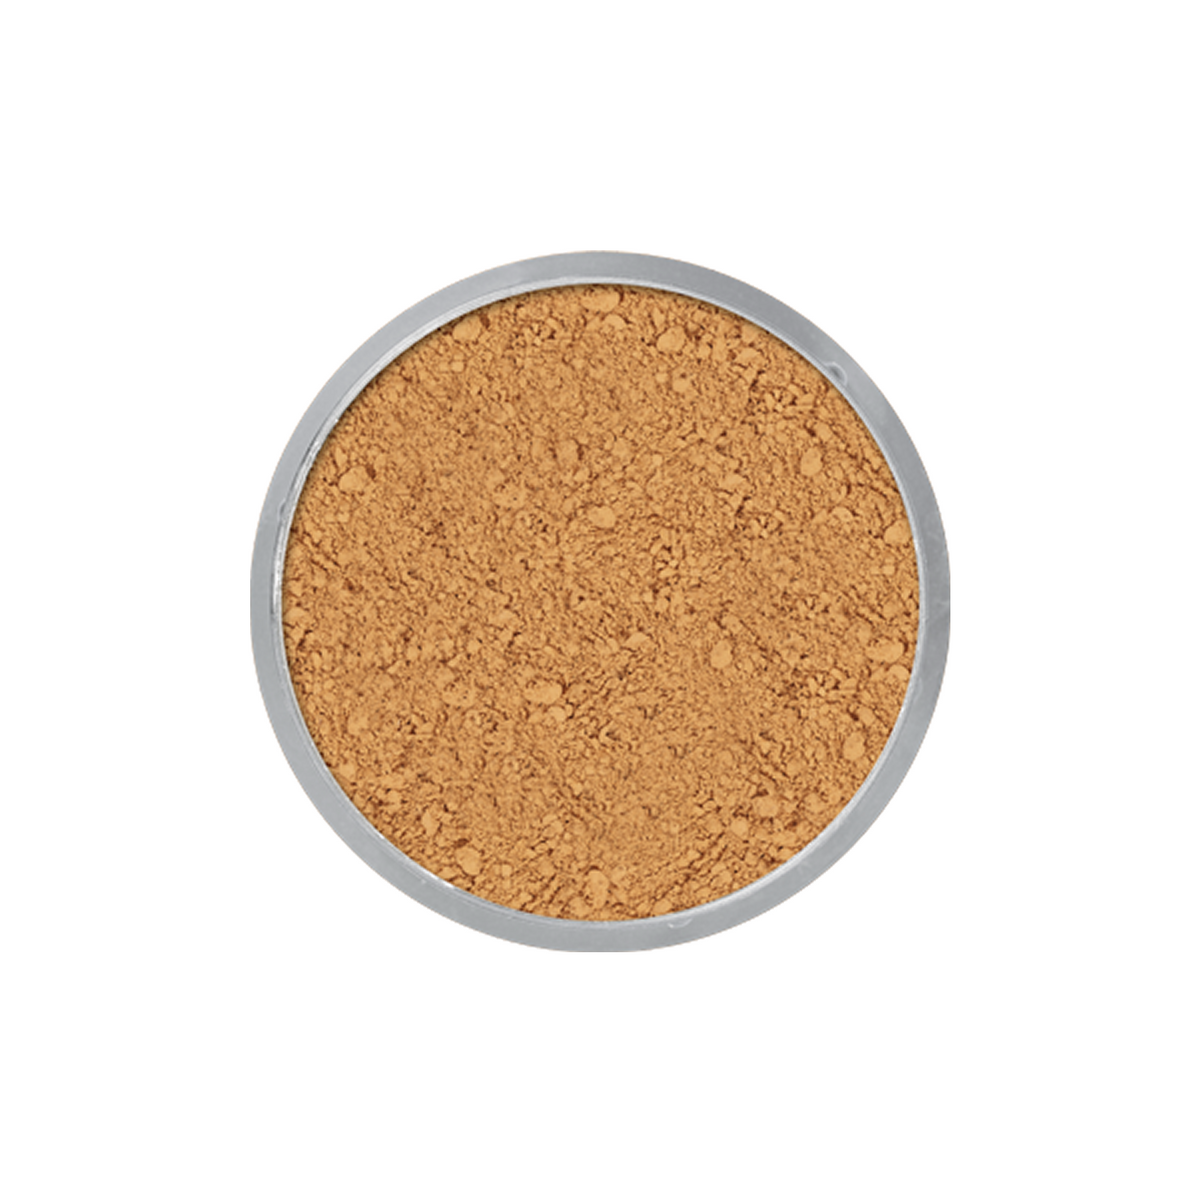 Kryolan Translucent Setting Powder